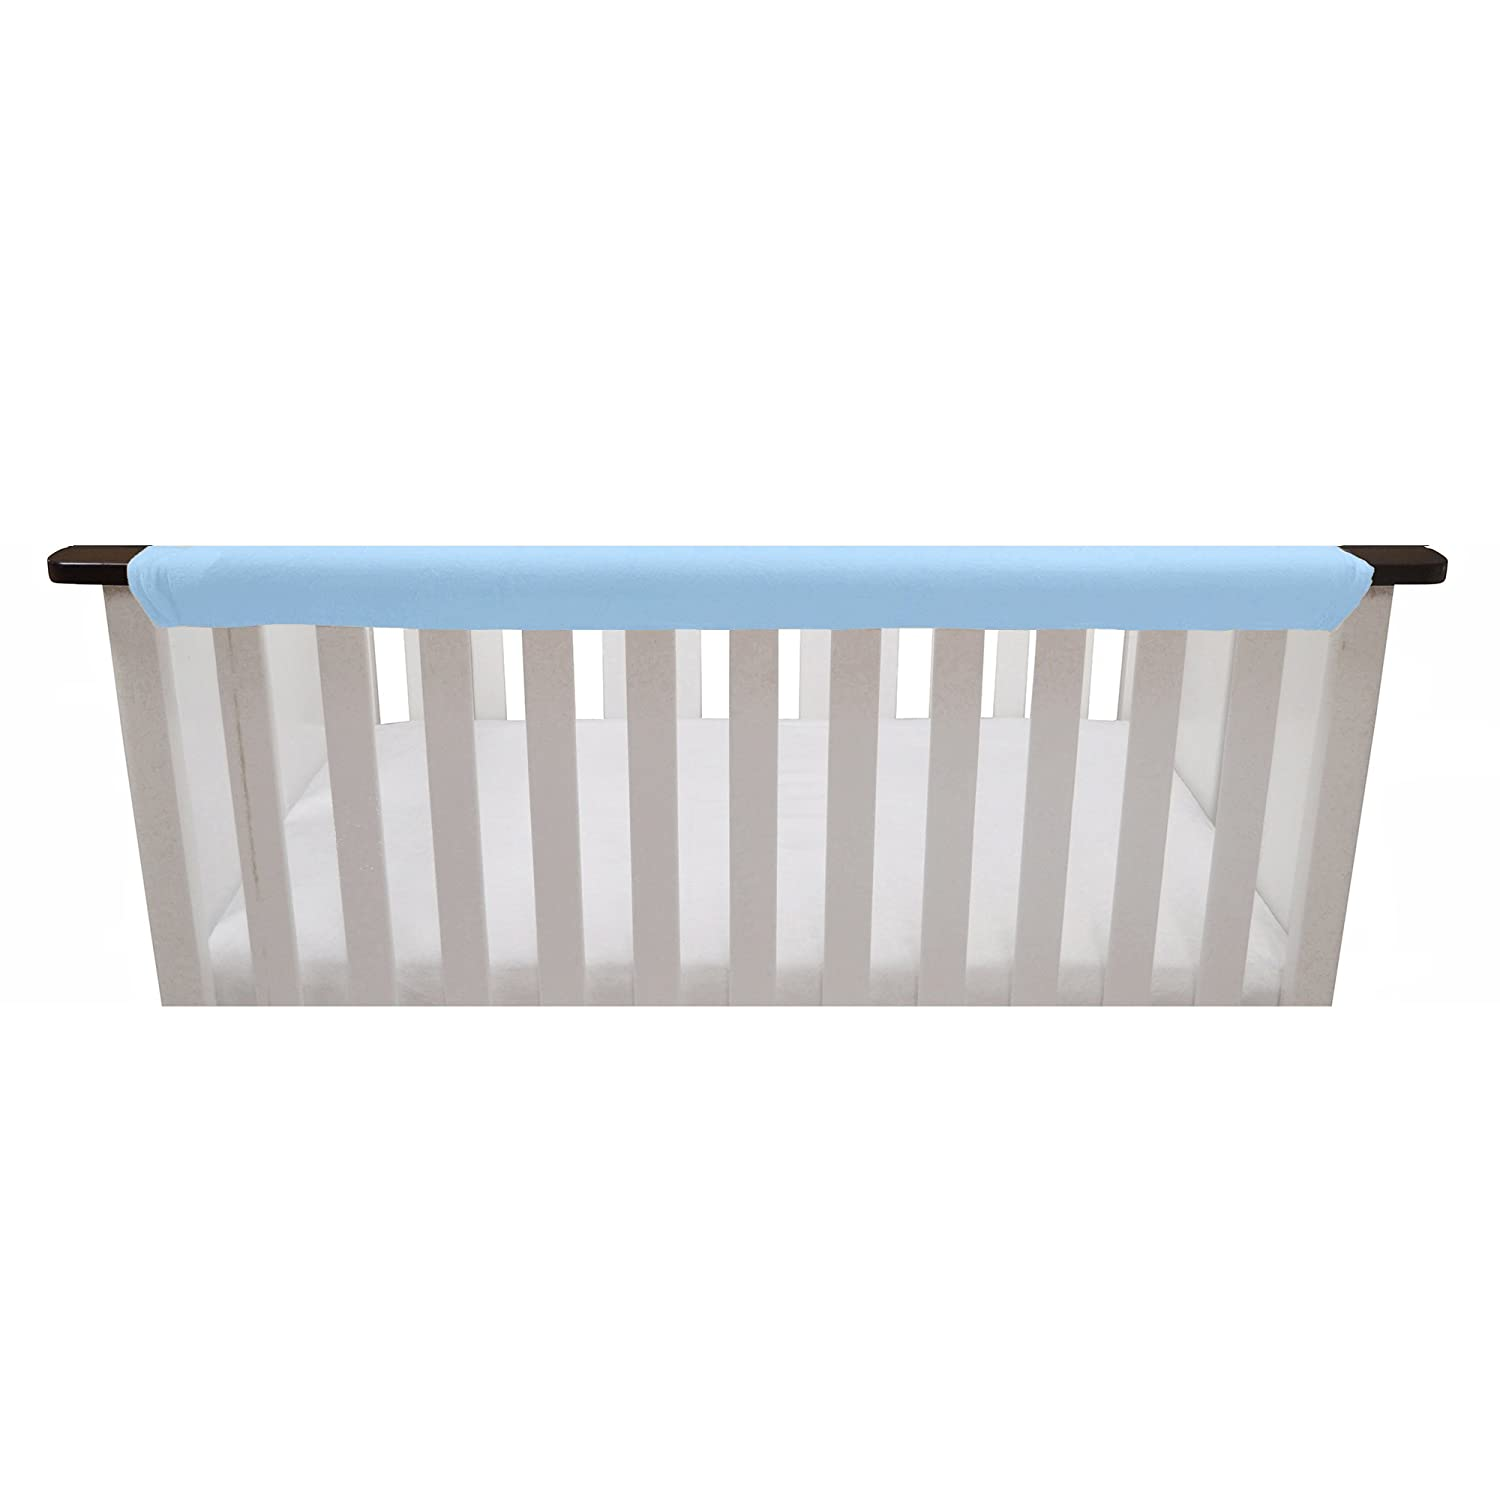 Go Mama Go Organic Teething Guard Protects Baby and Crib, Blue/White, 52